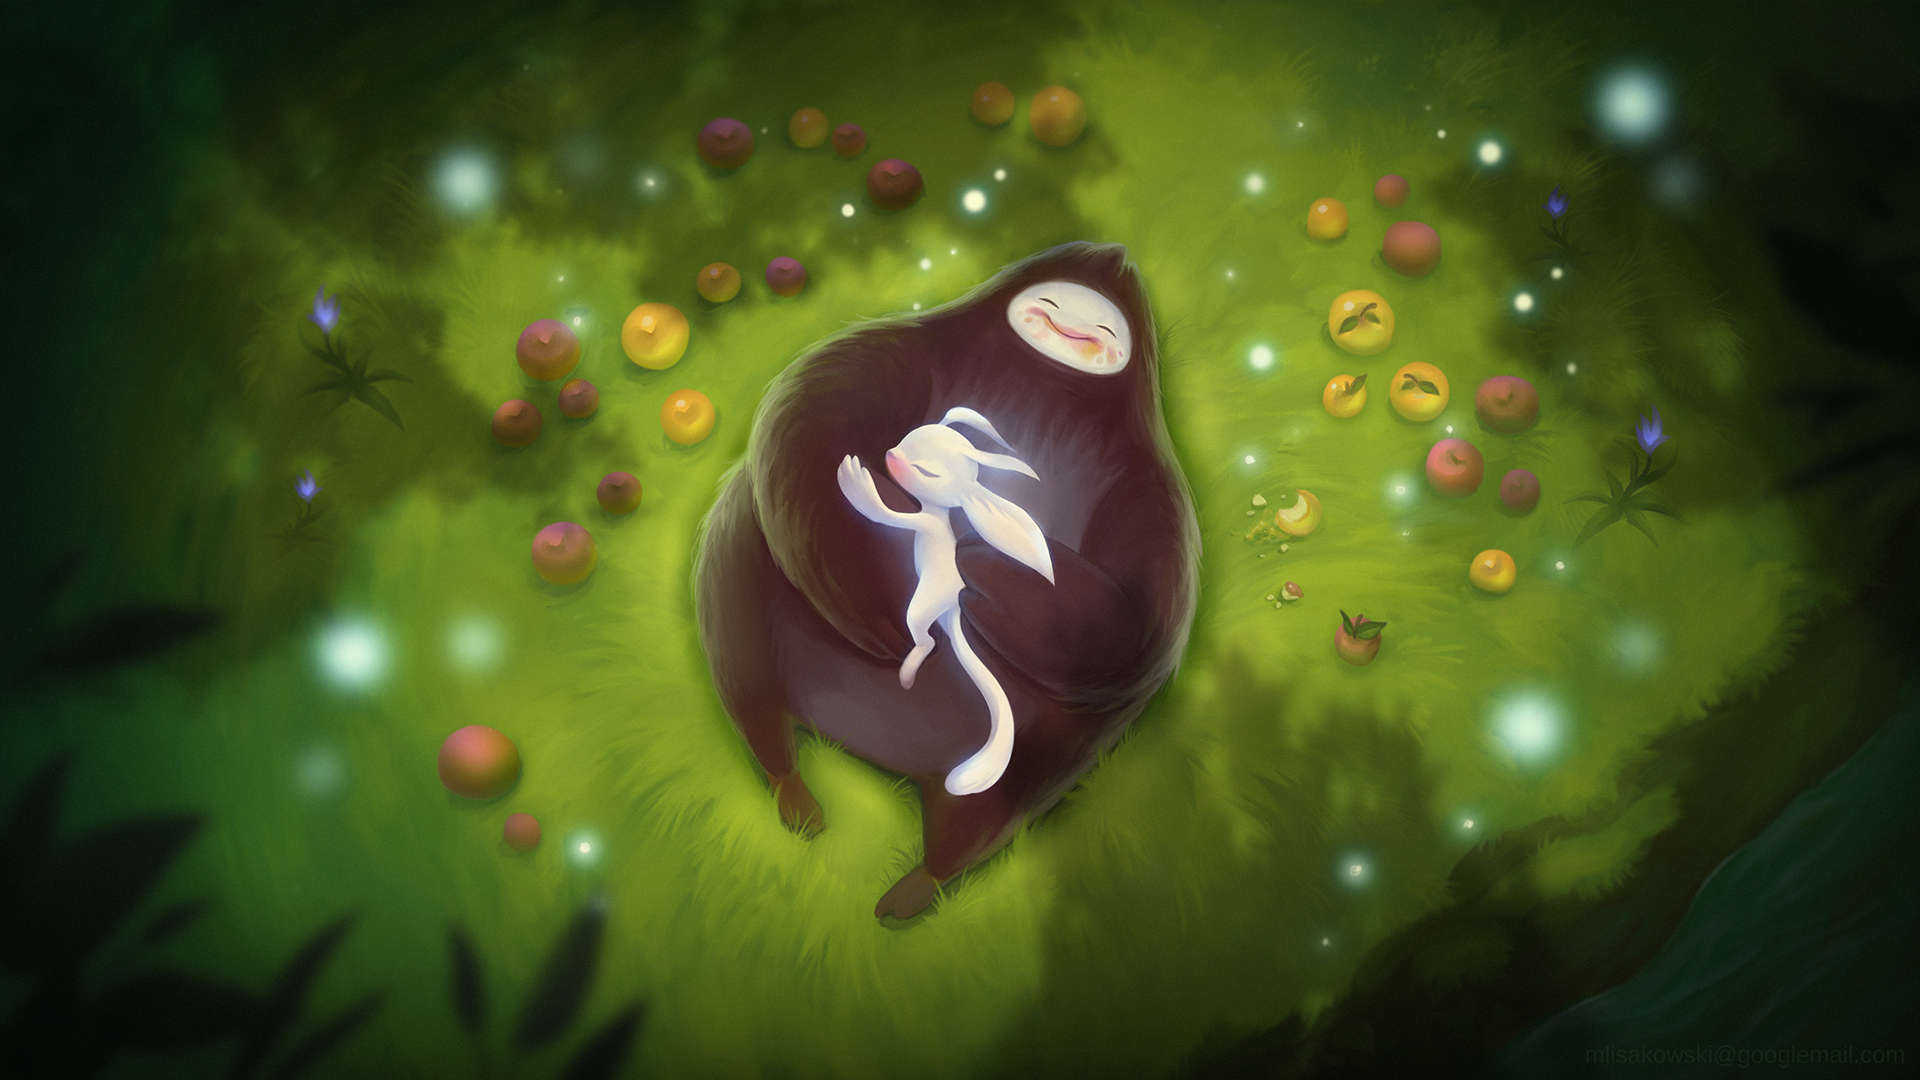 Ori And The Blind Forest Hd Wallpaper: Gorgeous Ori And The Blind Forest Wallpaper